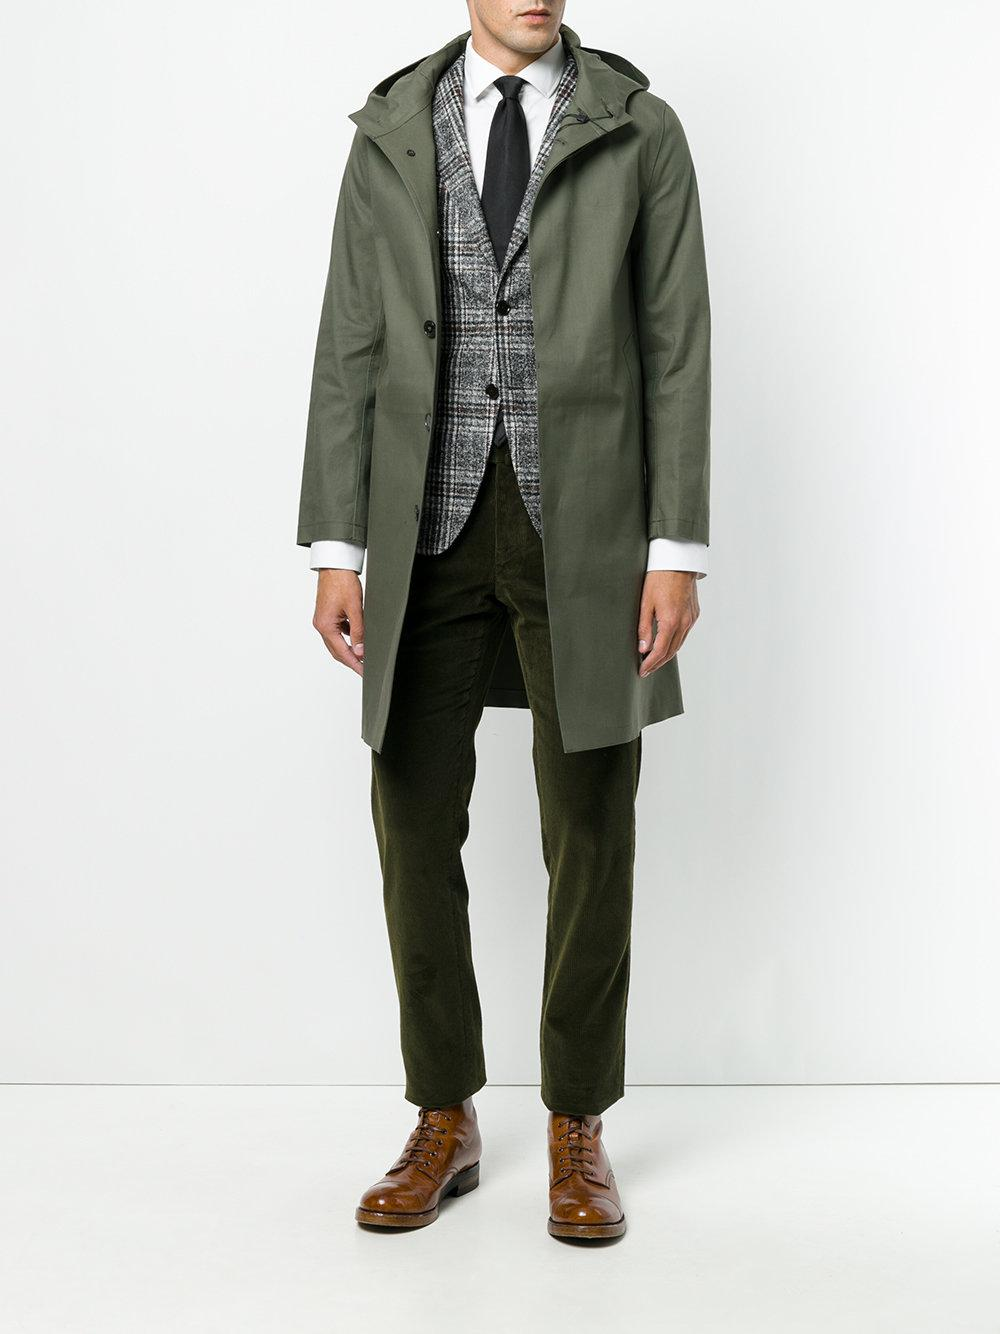 Mackintosh Cotton Hooded Raincoat in Green for Men - Lyst